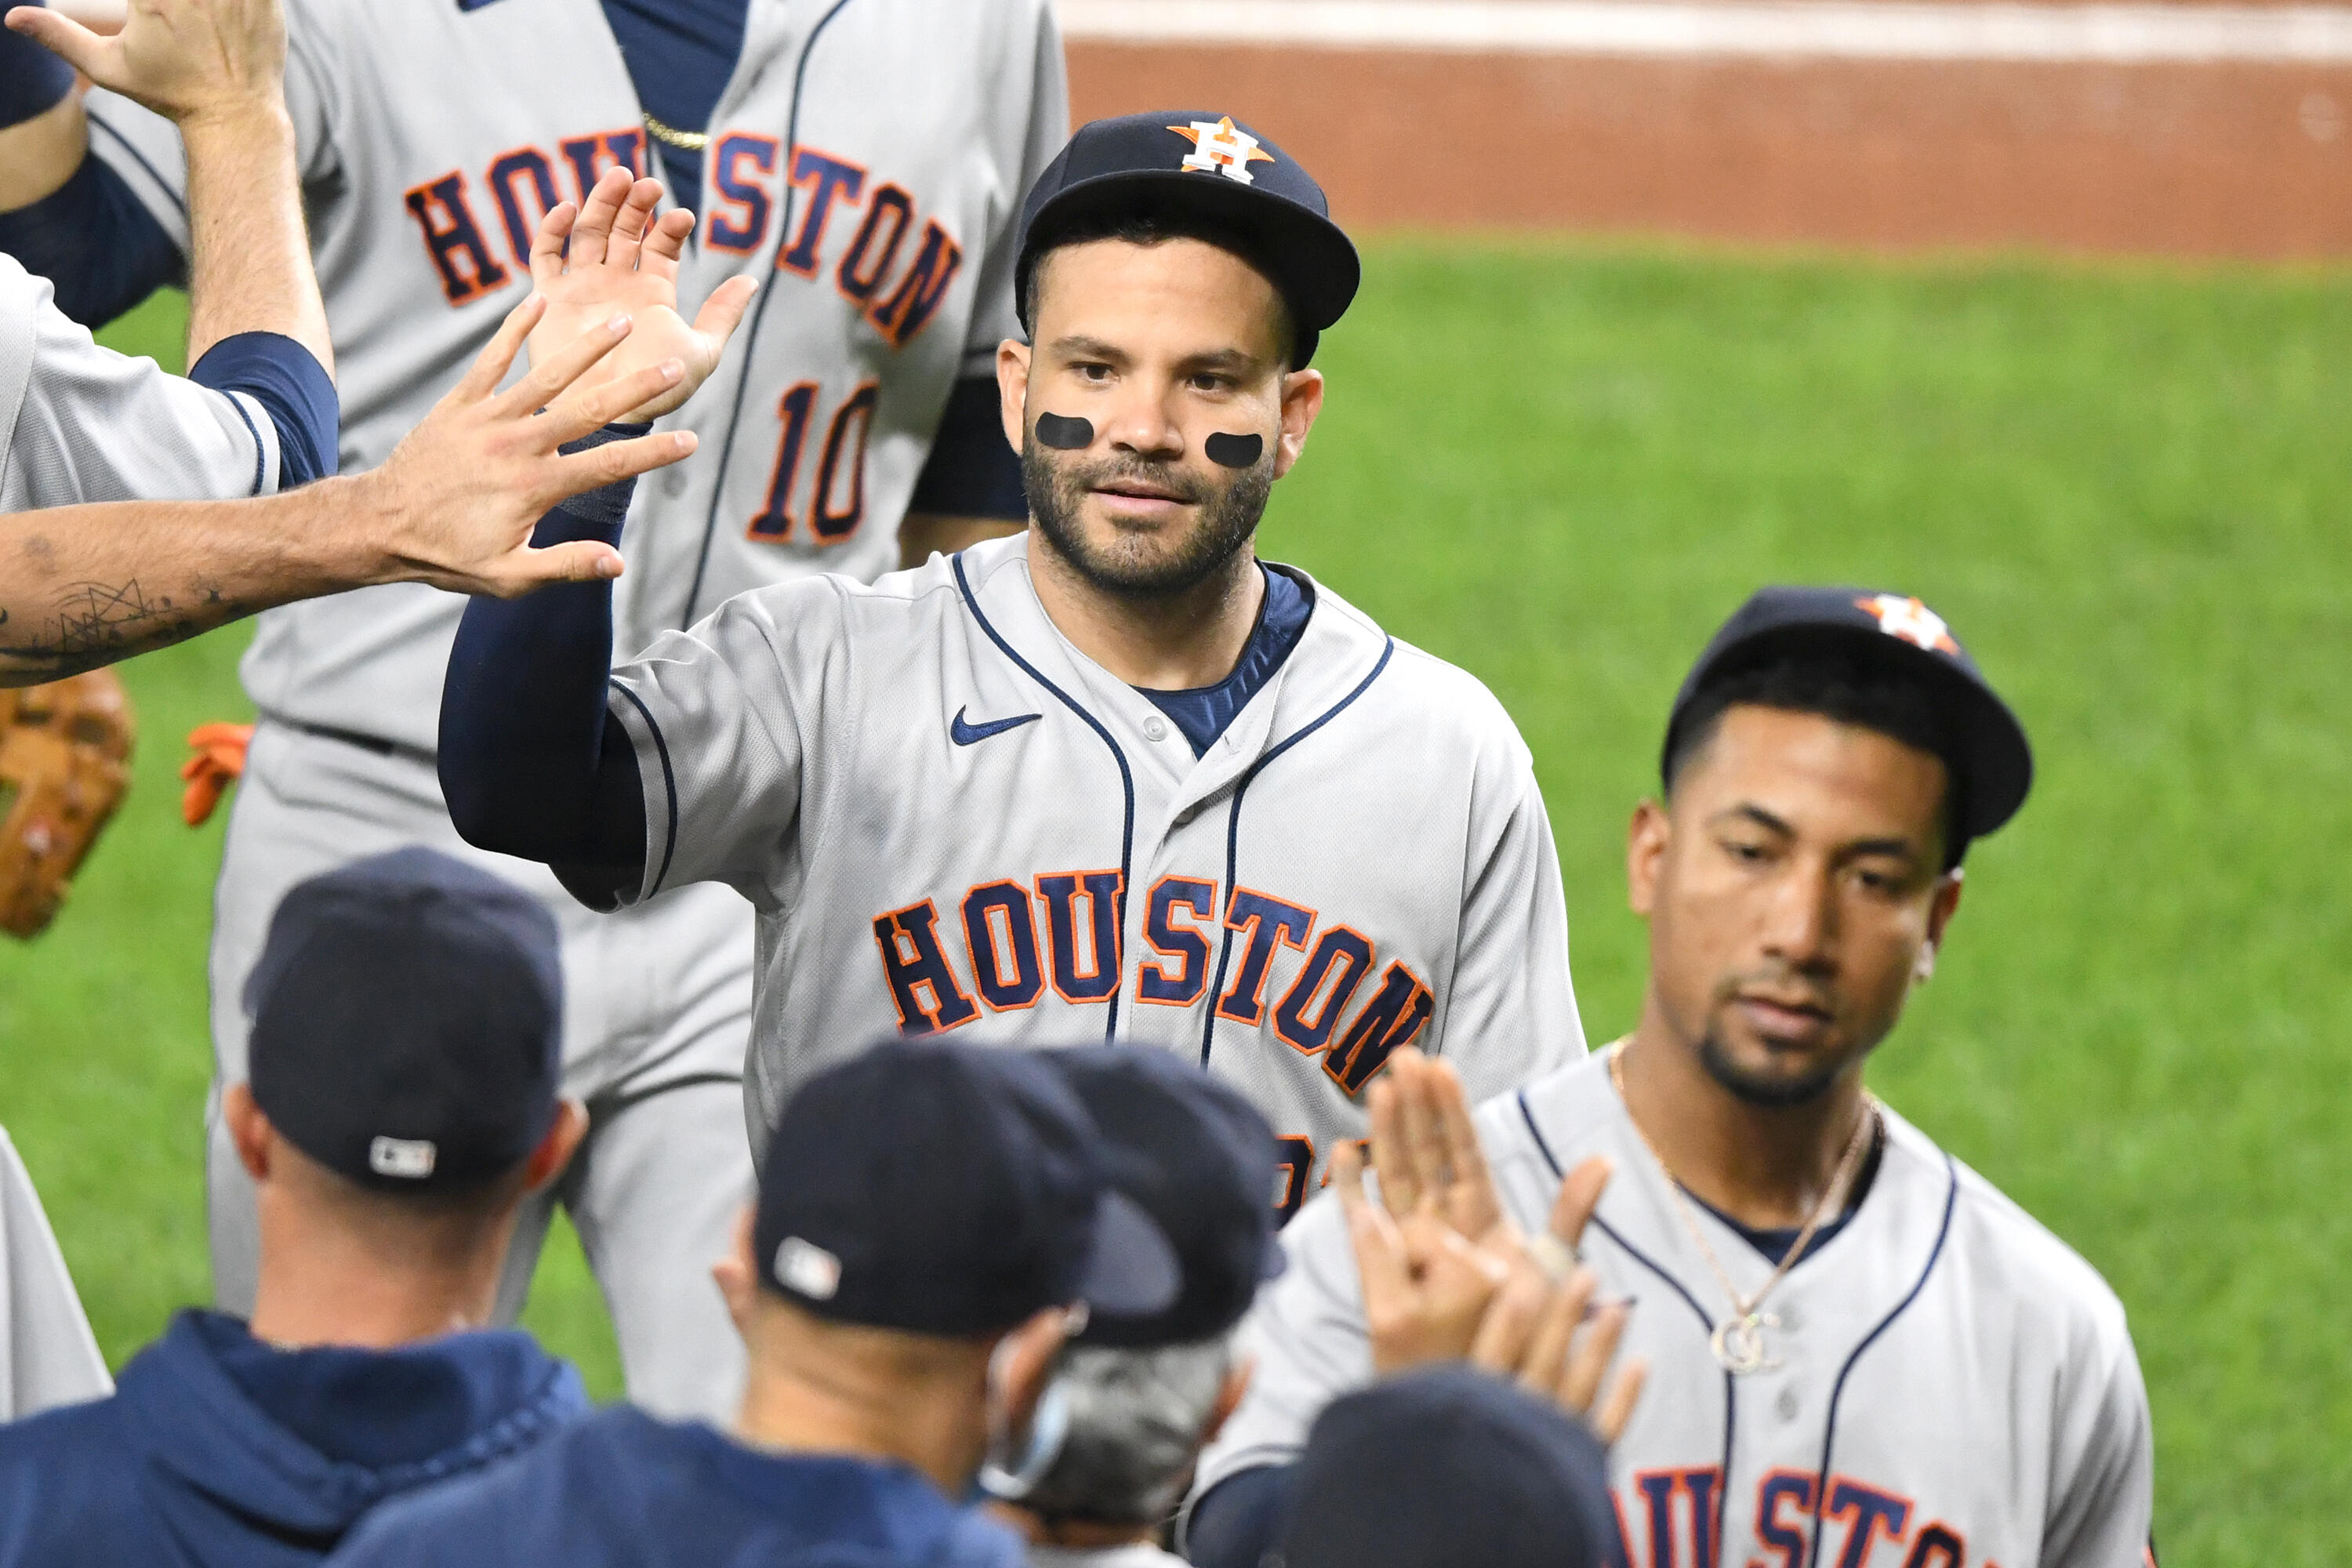 Crawford Box-Cast: The Astros Are Here To Dance With Your Dates